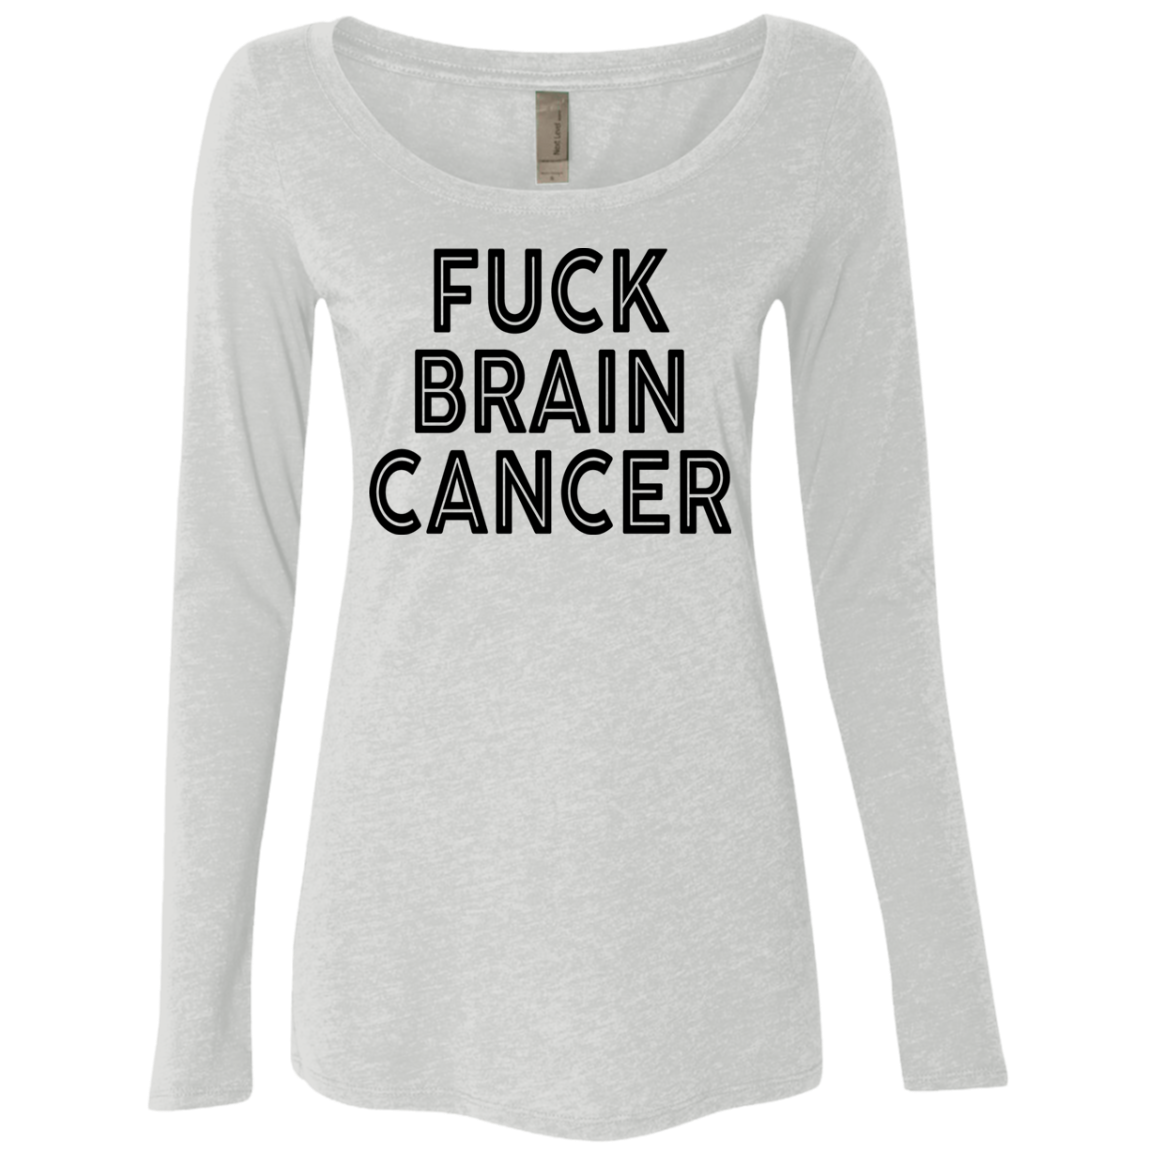 Fuck Brain Cancer Women's Long Sleeve Tee